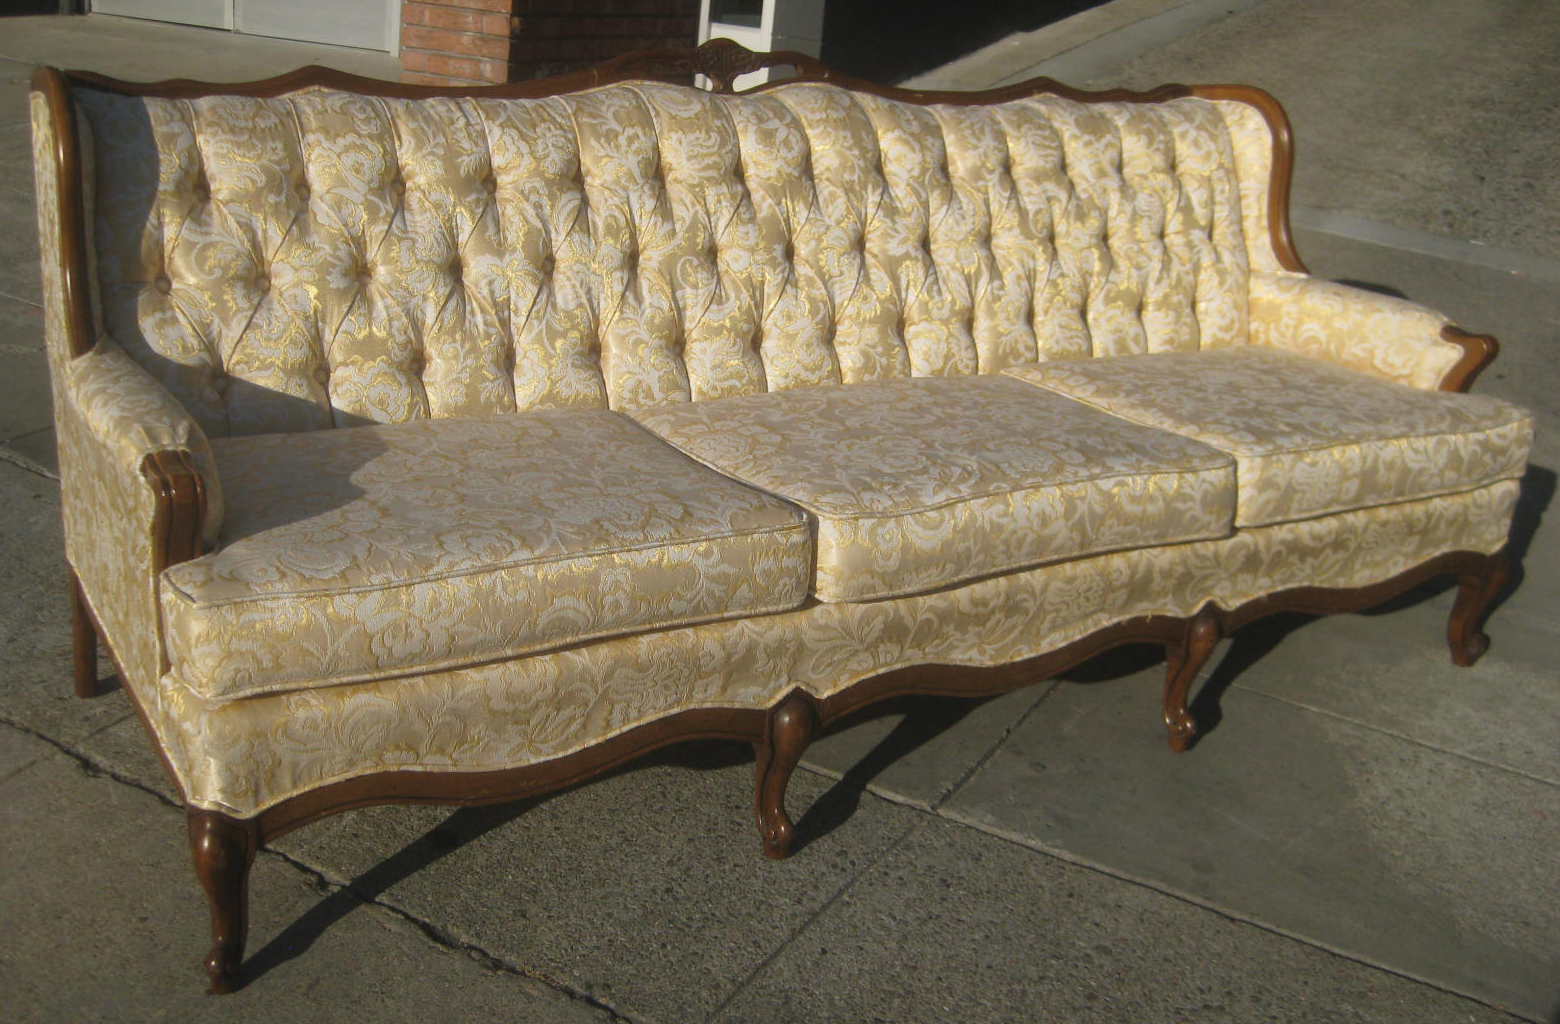 Impressive French Provincial Sofa Furniture 1560 x 1024 · 1236 kB · jpeg